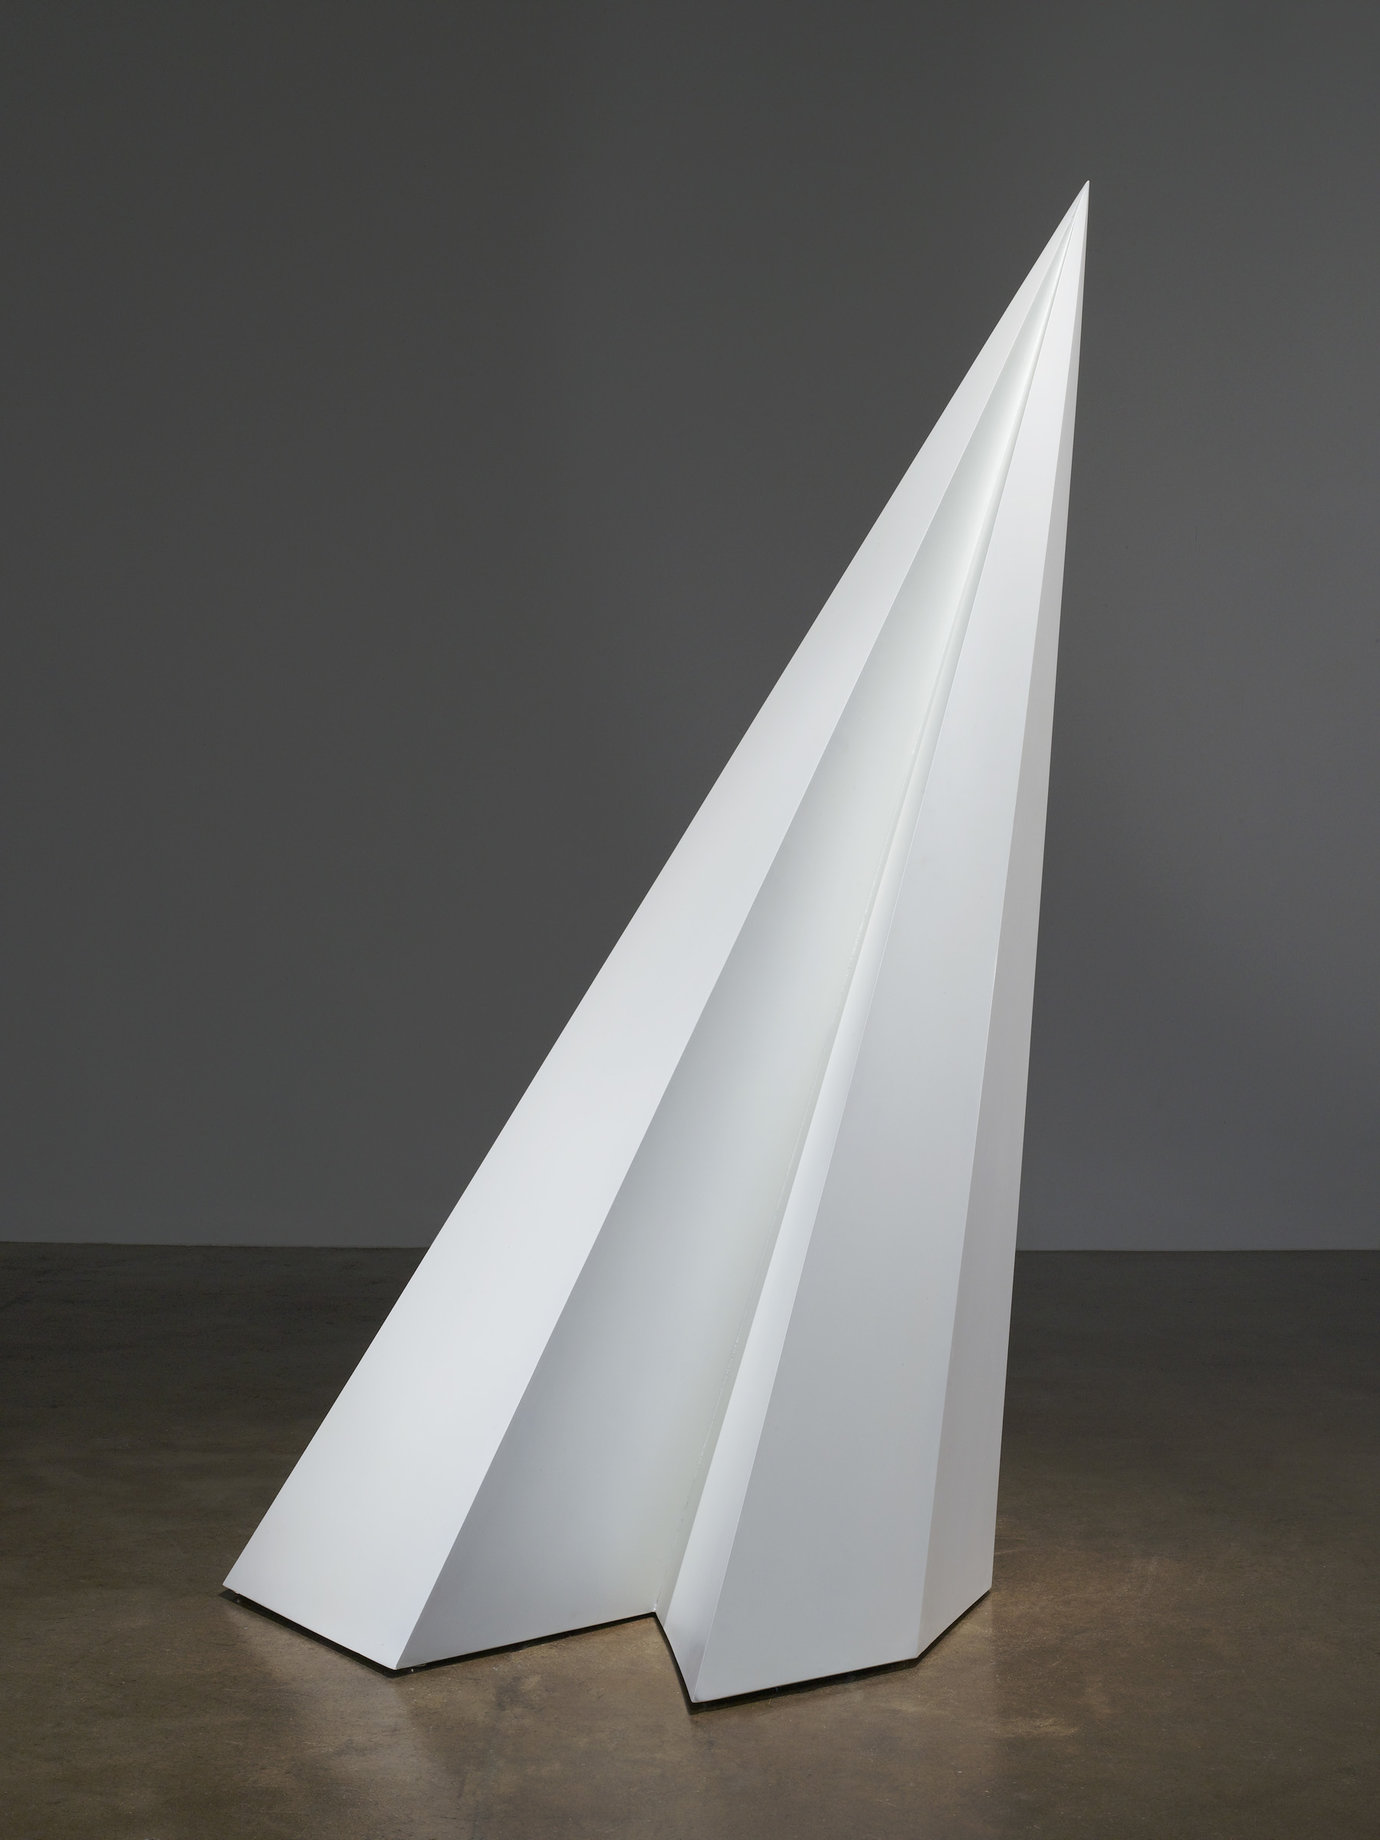 ", 1985. painted wood, 79-7/8"" x 47"" x 37-1/2"" (202.9 cm x 119.4 cm x 95.3 cm)."